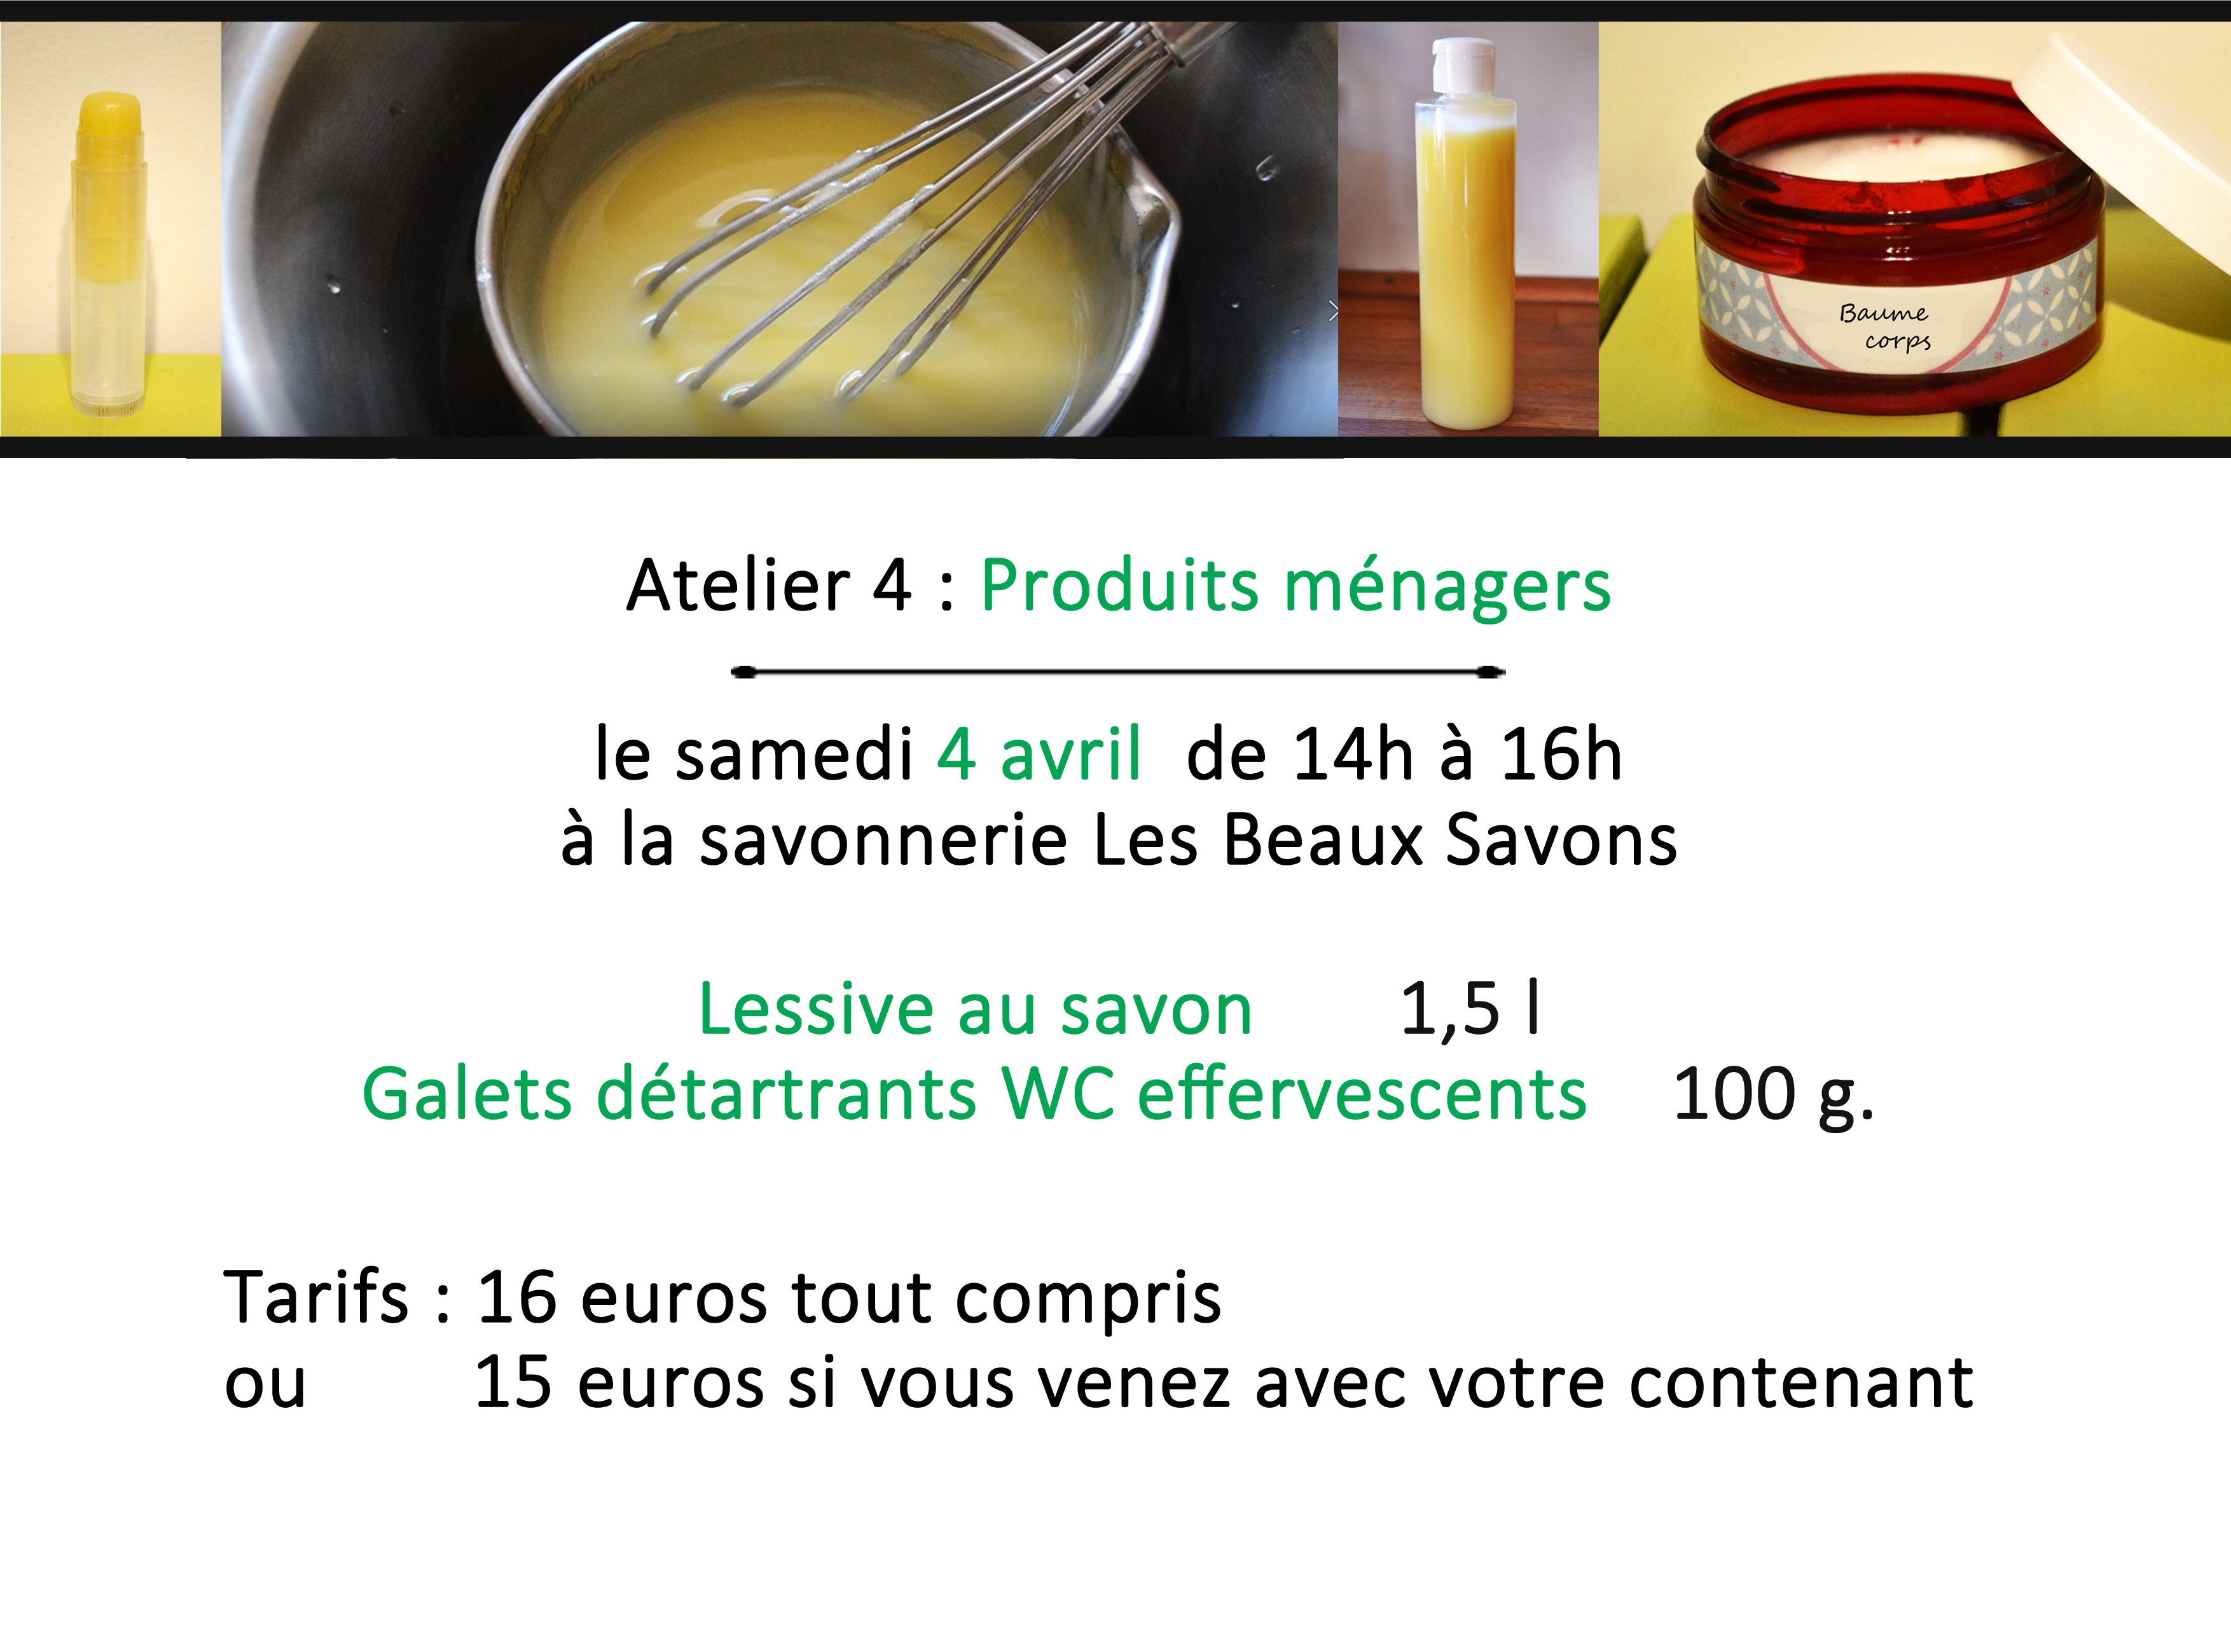 Ateliers 4 maison.png